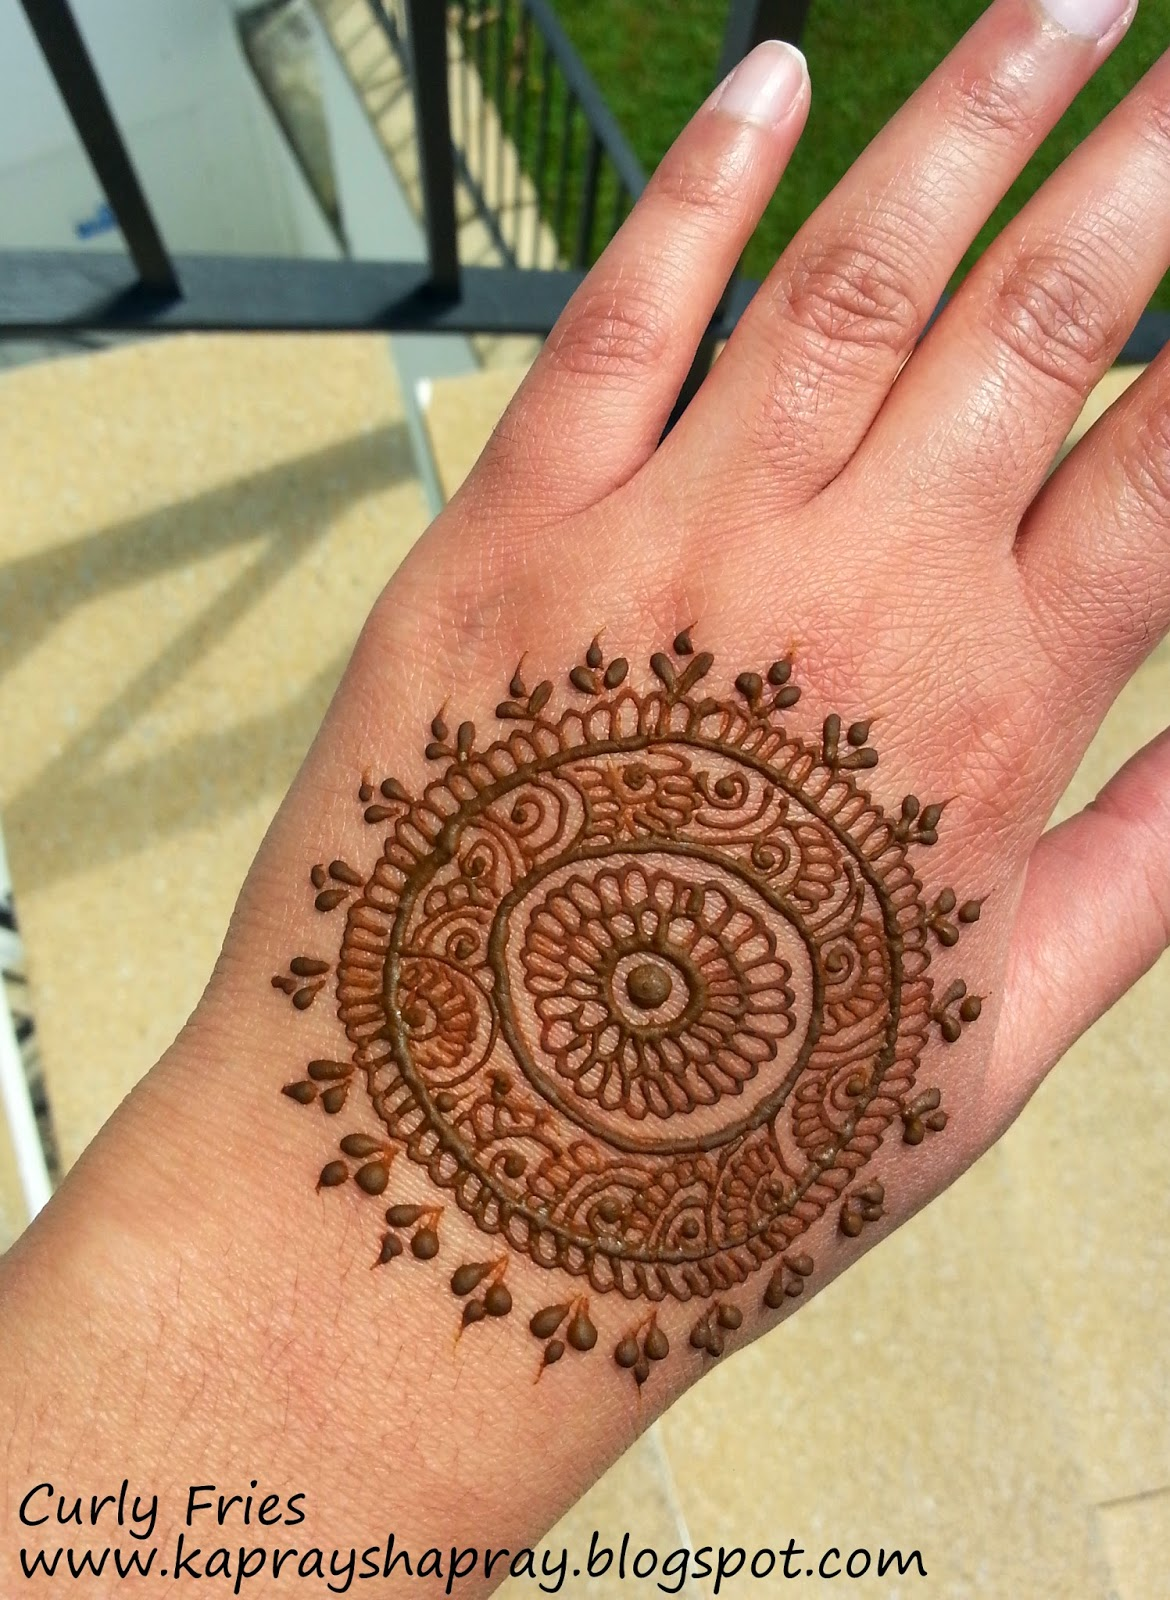 Mehndi Patterns Explained : Curly fries the wedding posts my mehndi trial